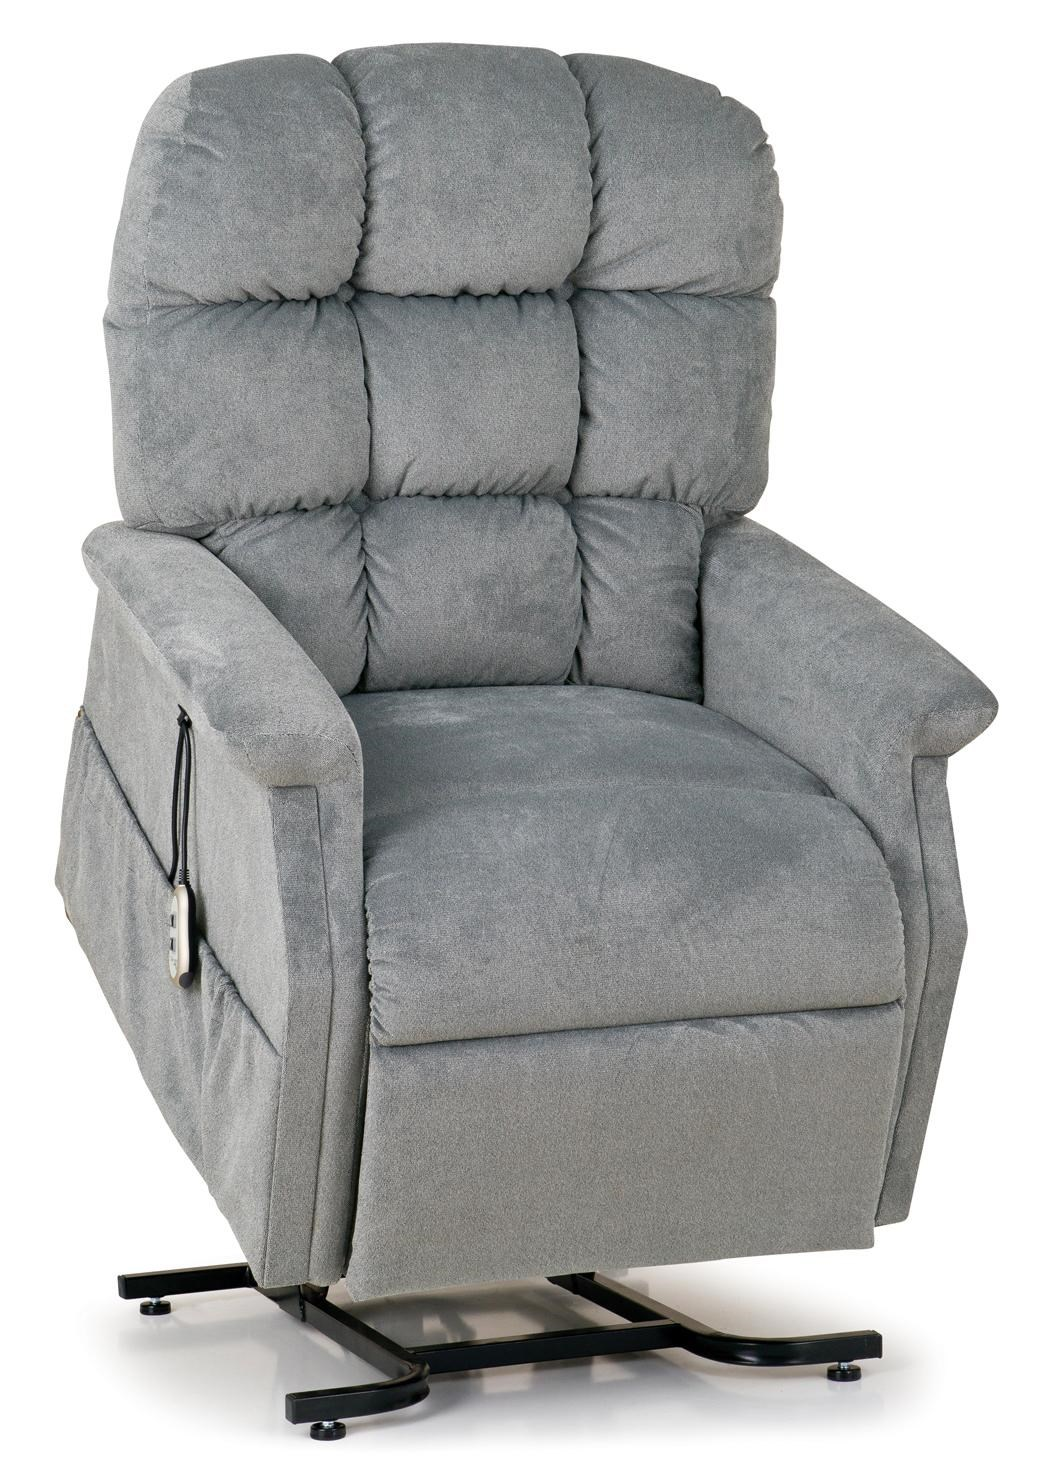 UltraComfort Tranquility Medium Lift Recliner Turk